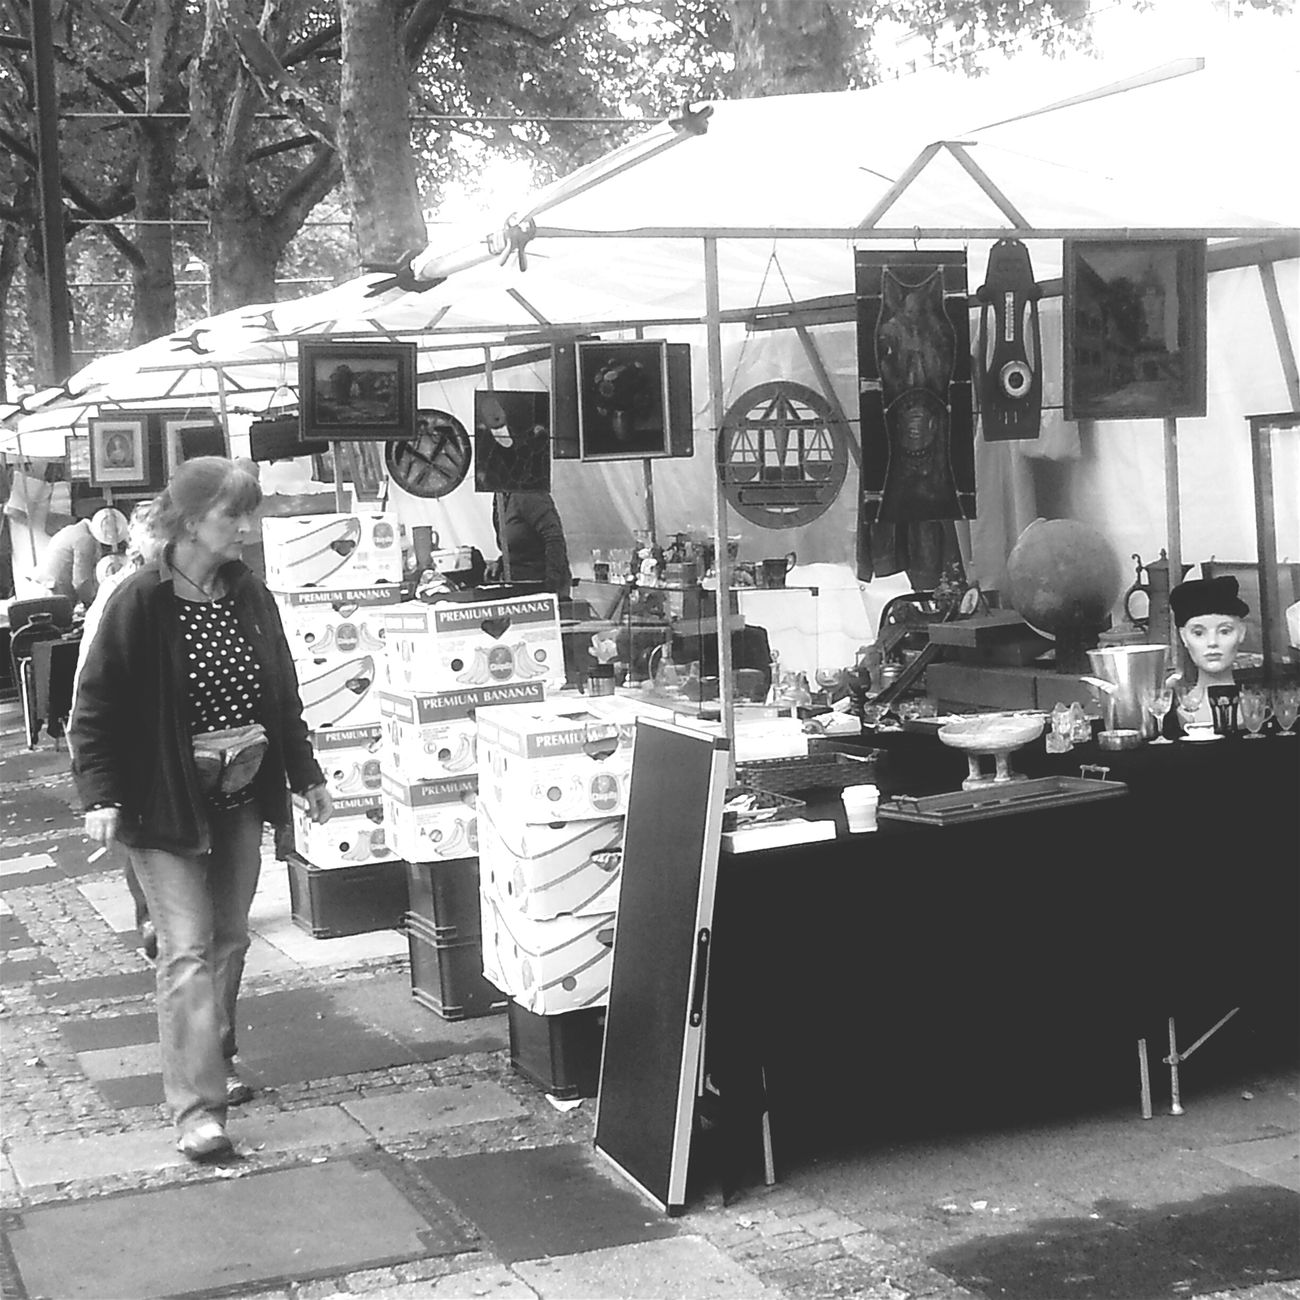 Urban Landscape City Life Streetphoto_bw Streetphotography Going To Market Urban Lifestyle Cityscapes Flea Markets Street Market